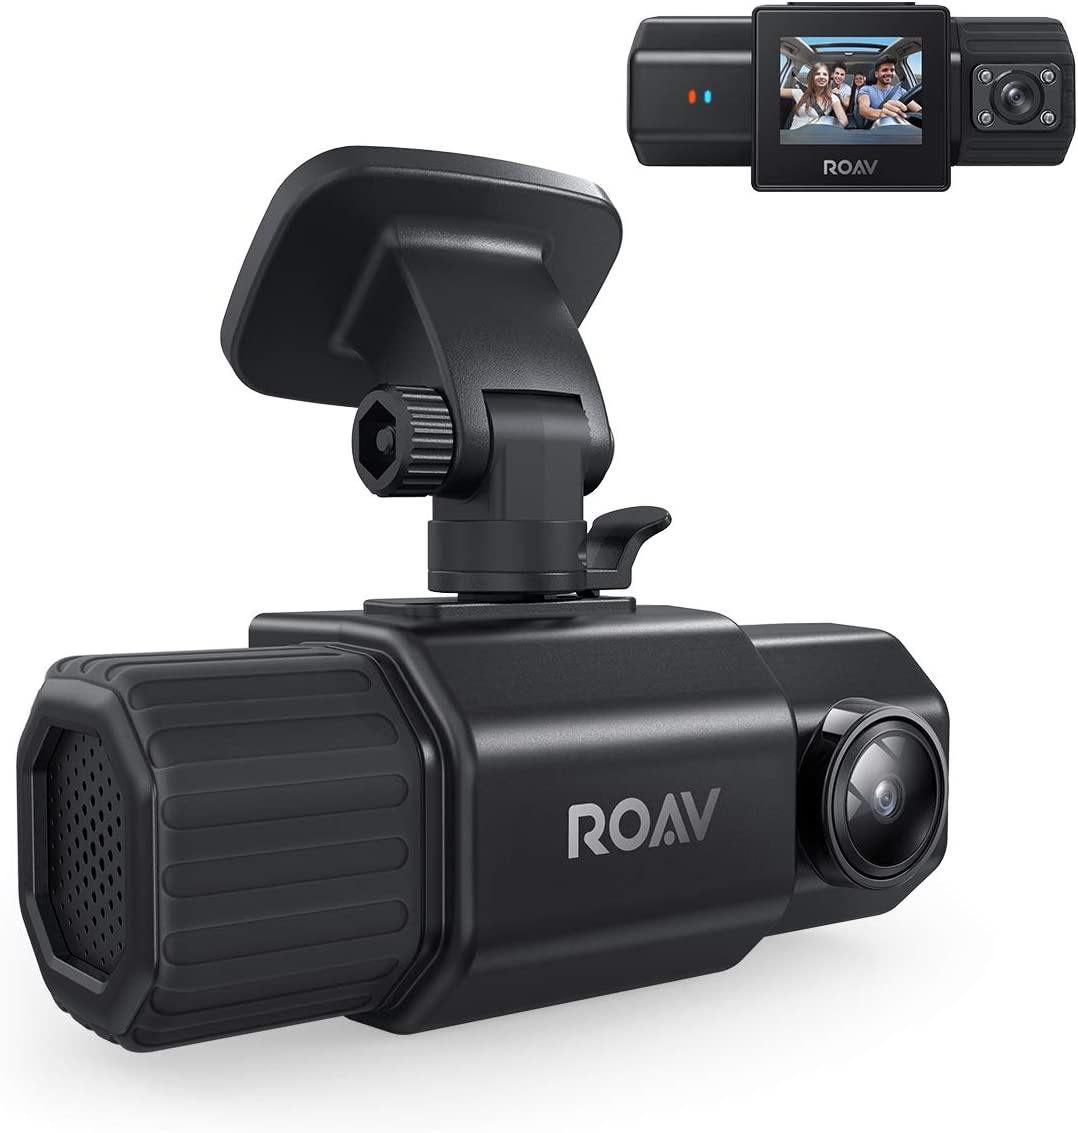 Anker Roav 1080p DashCam Duo Dual Front & Interior Wide Angle Car Cameras